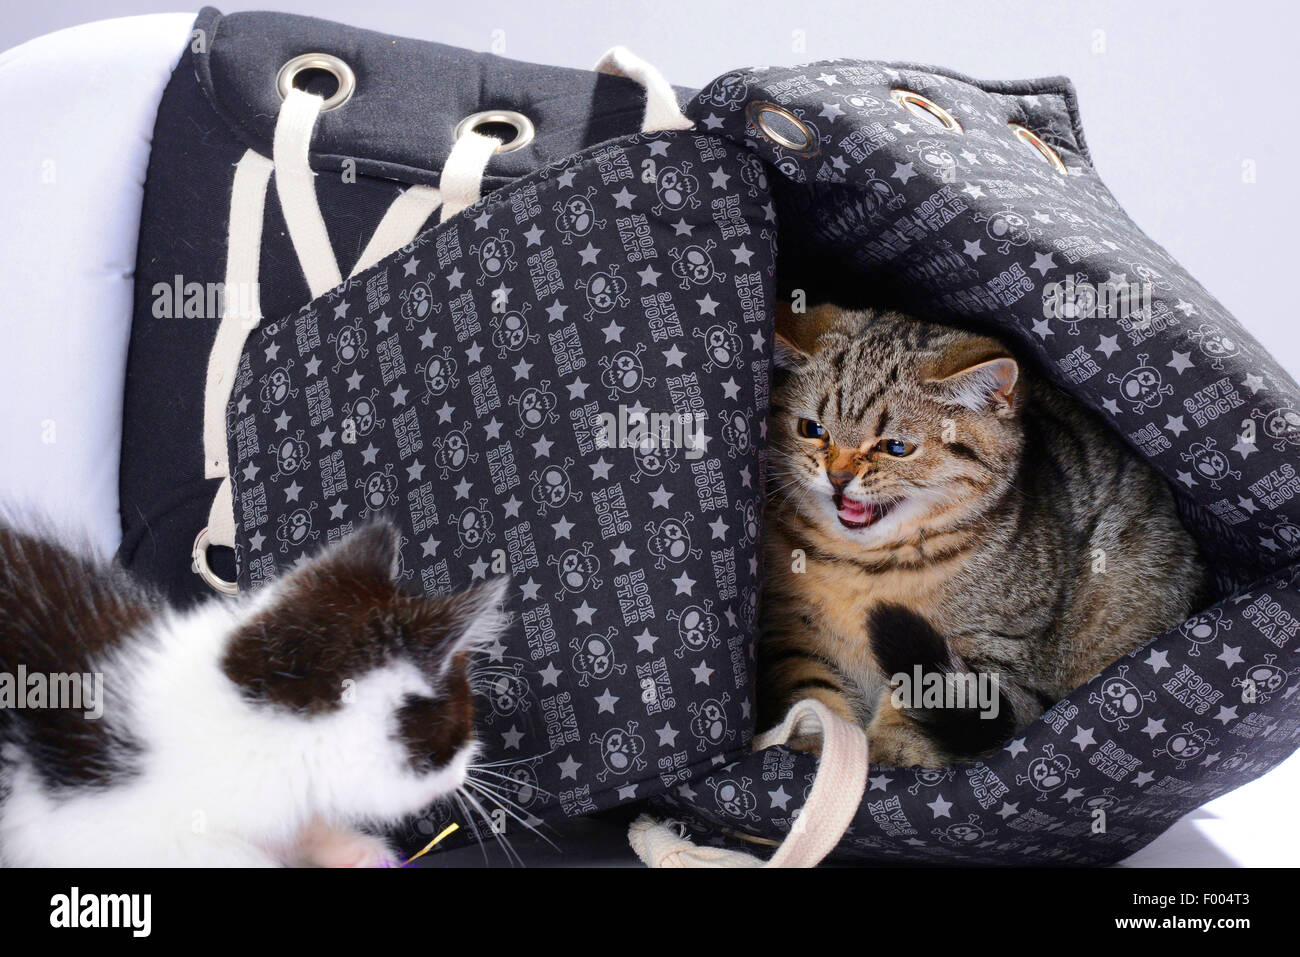 British Shorthair (Felis silvestris f. catus), two little kittens snarling at each other - Stock Image